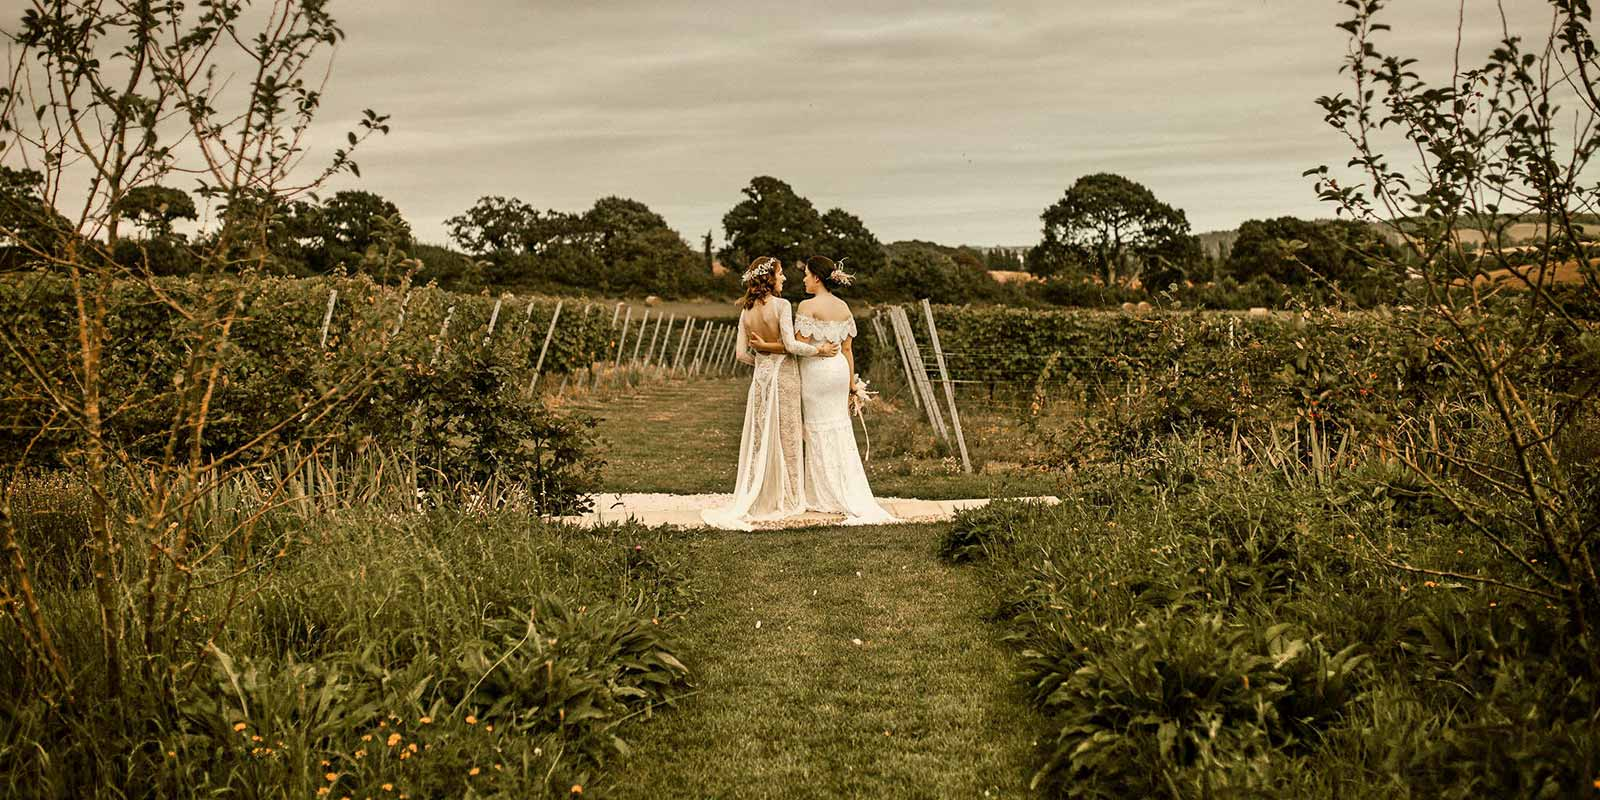 Couple overlooking the vineyard and countryside